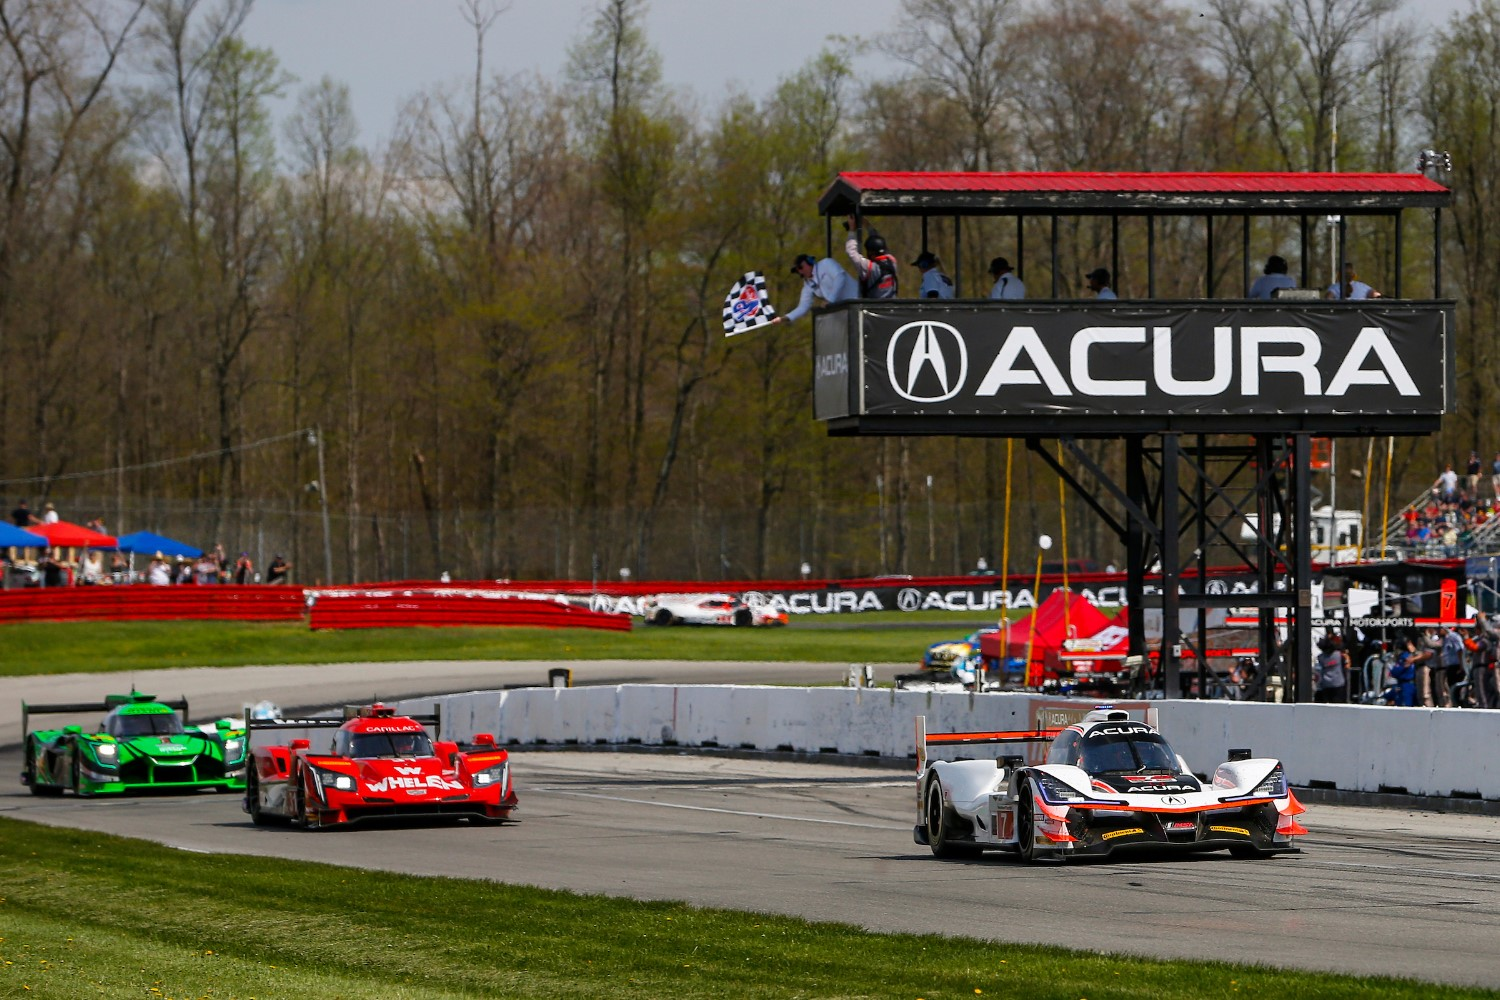 Places like Mid-Ohio have a limited pitlane to accommodate a lot of cars